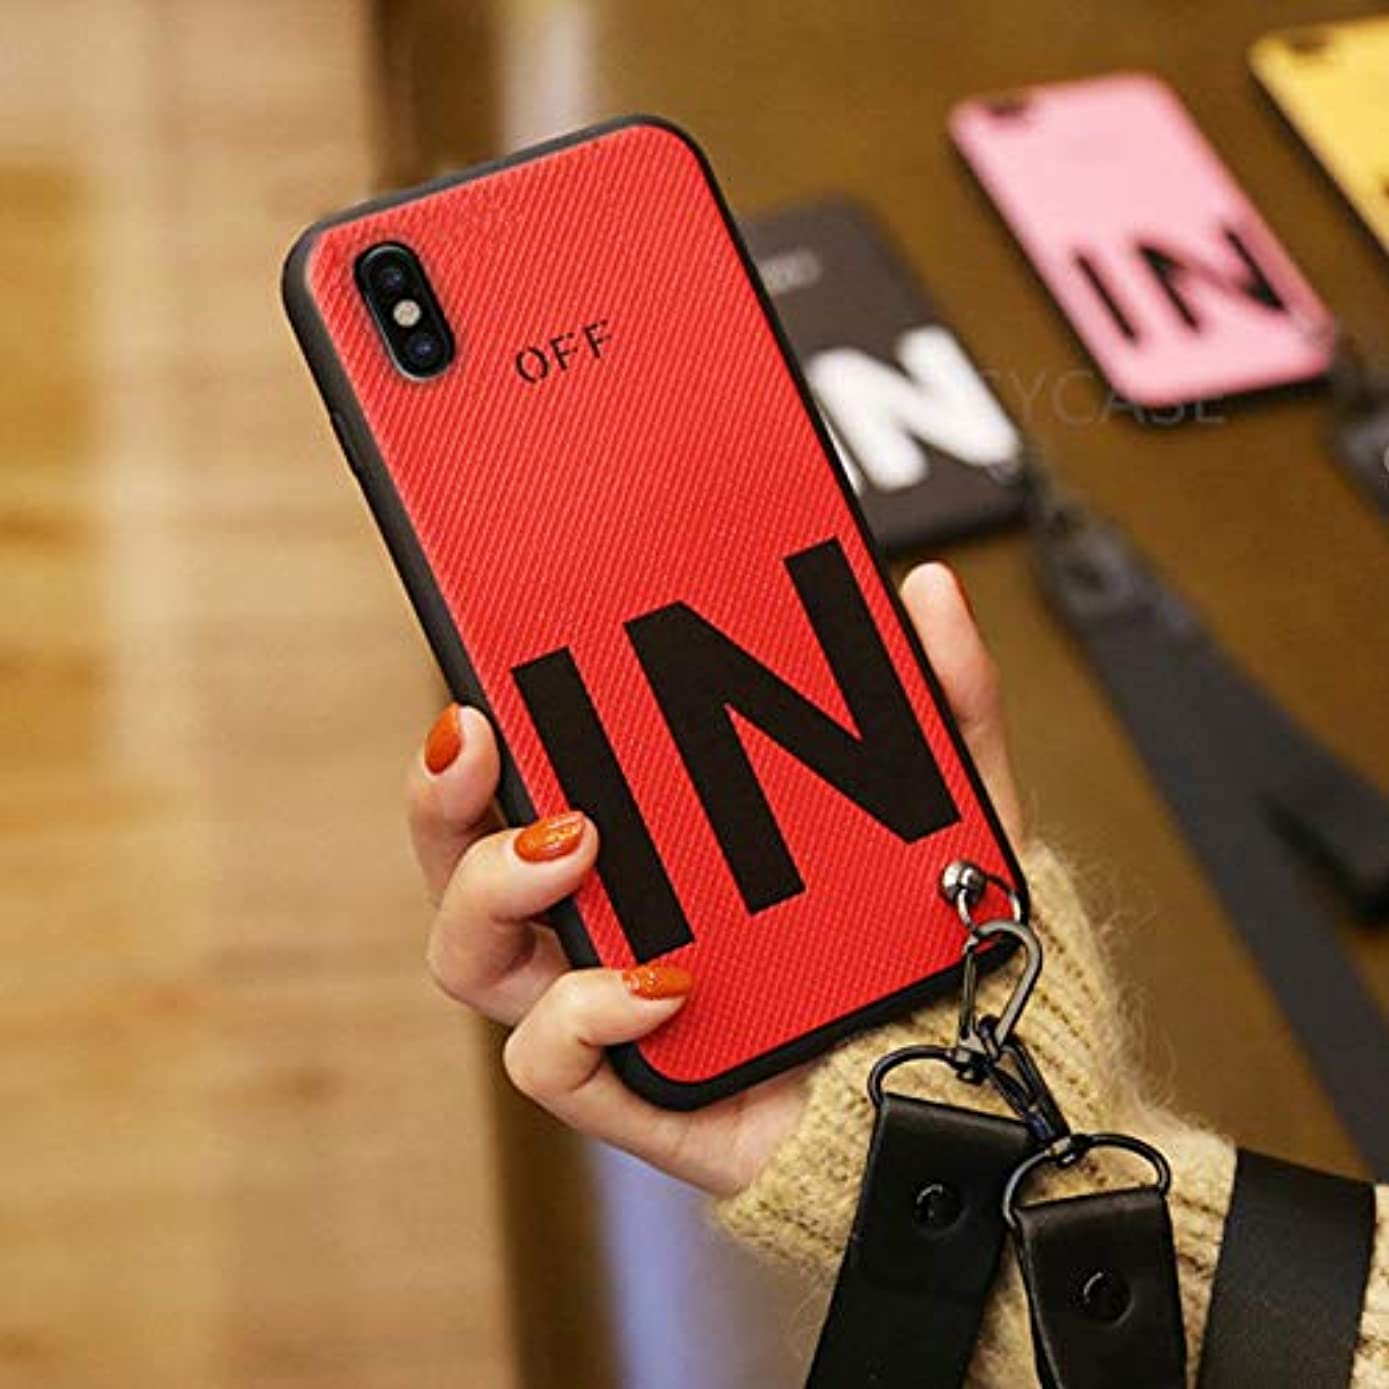 Fitted Cases - Hot Popular Fashion in Letters ANEnd Strap Lanyard Phone case for iPhone X XR Xs Max 6 6S 7 8 Plus Soft Silicon Back Cover - by ANNELE - 1 PCs